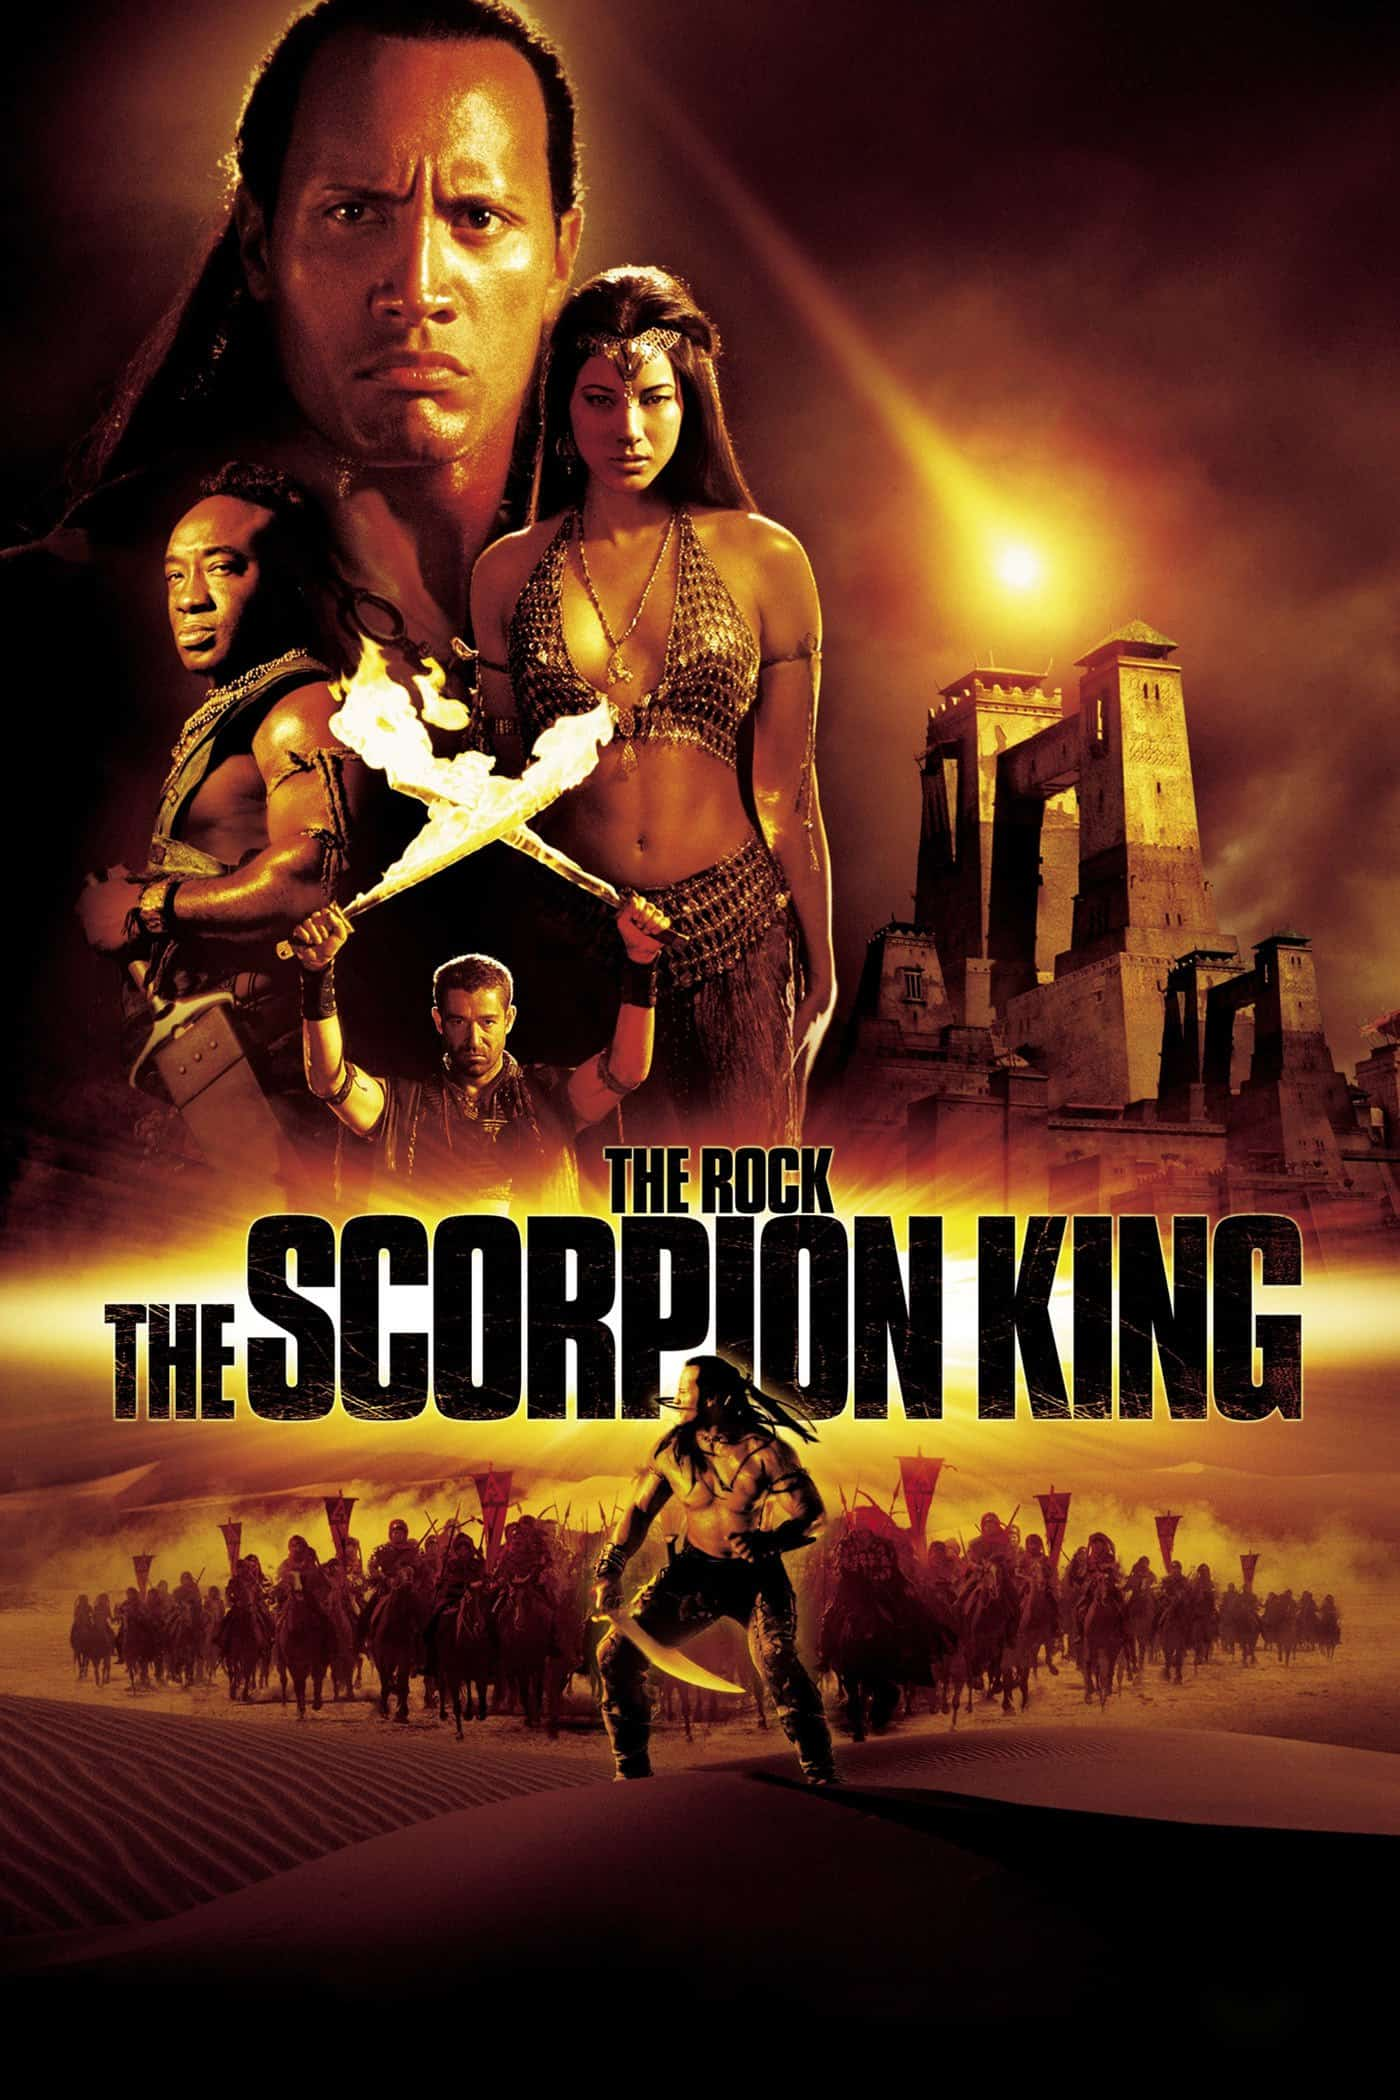 The Scorpion King, 2002